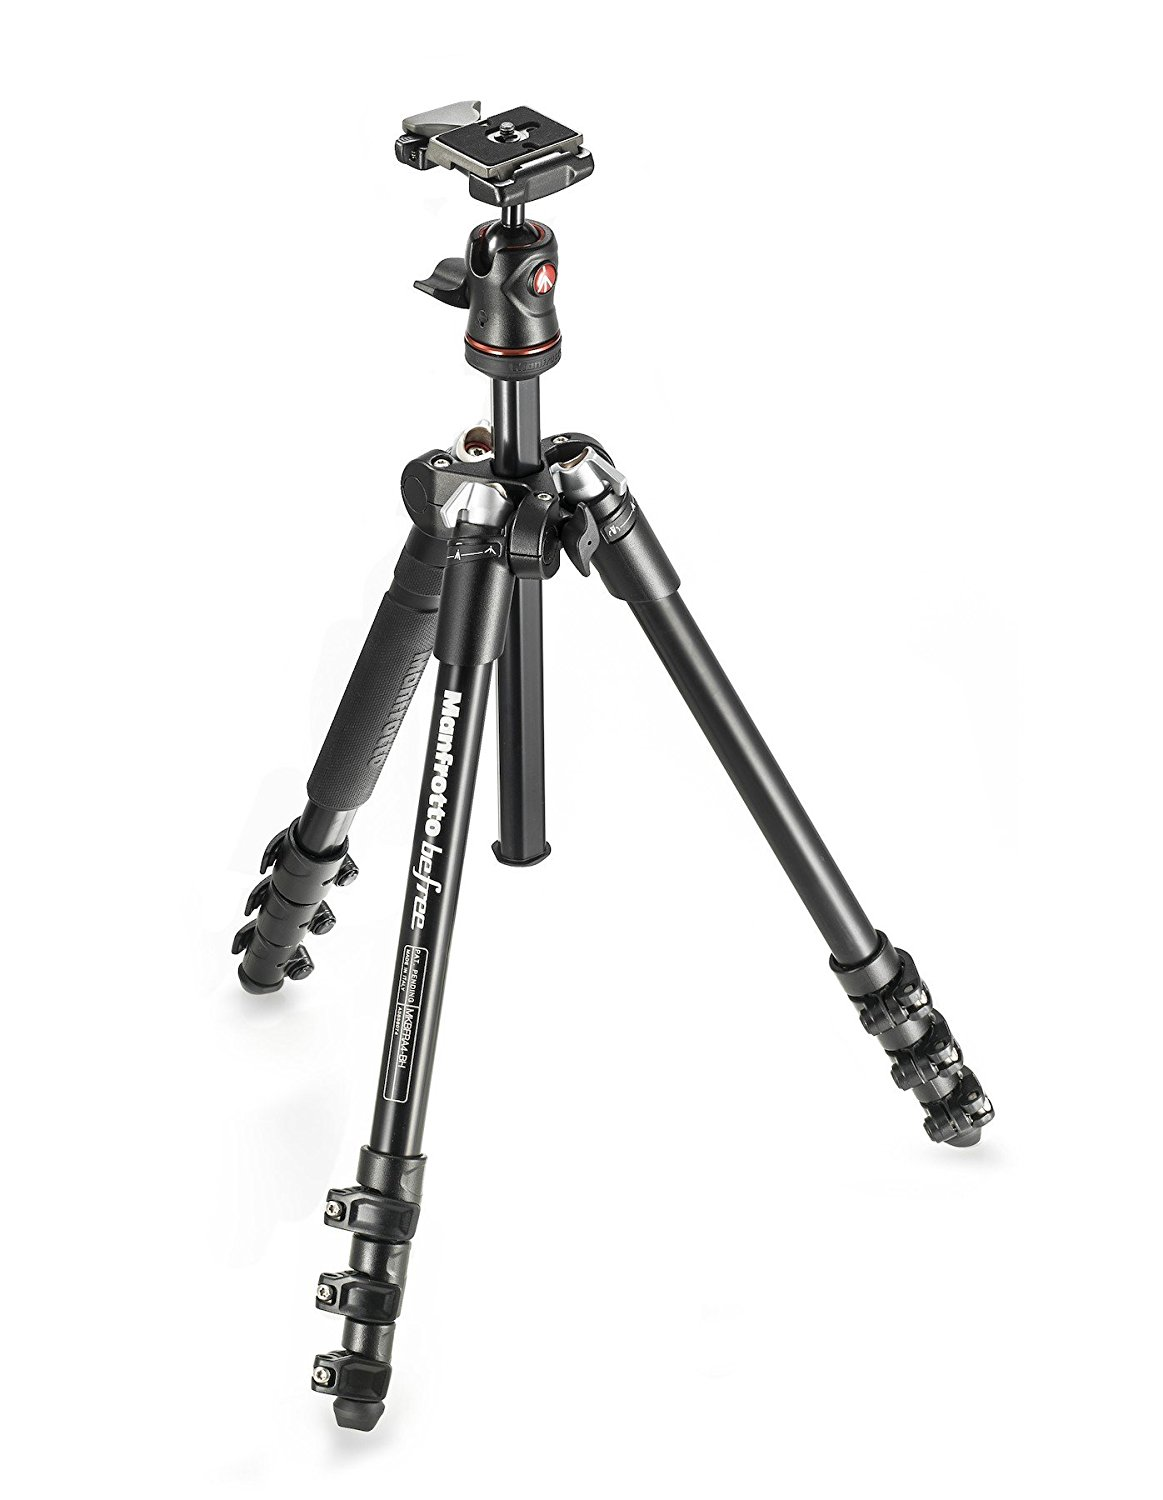 couples_coordinates_travel_photography_gear_travel_tripod_manfrotto